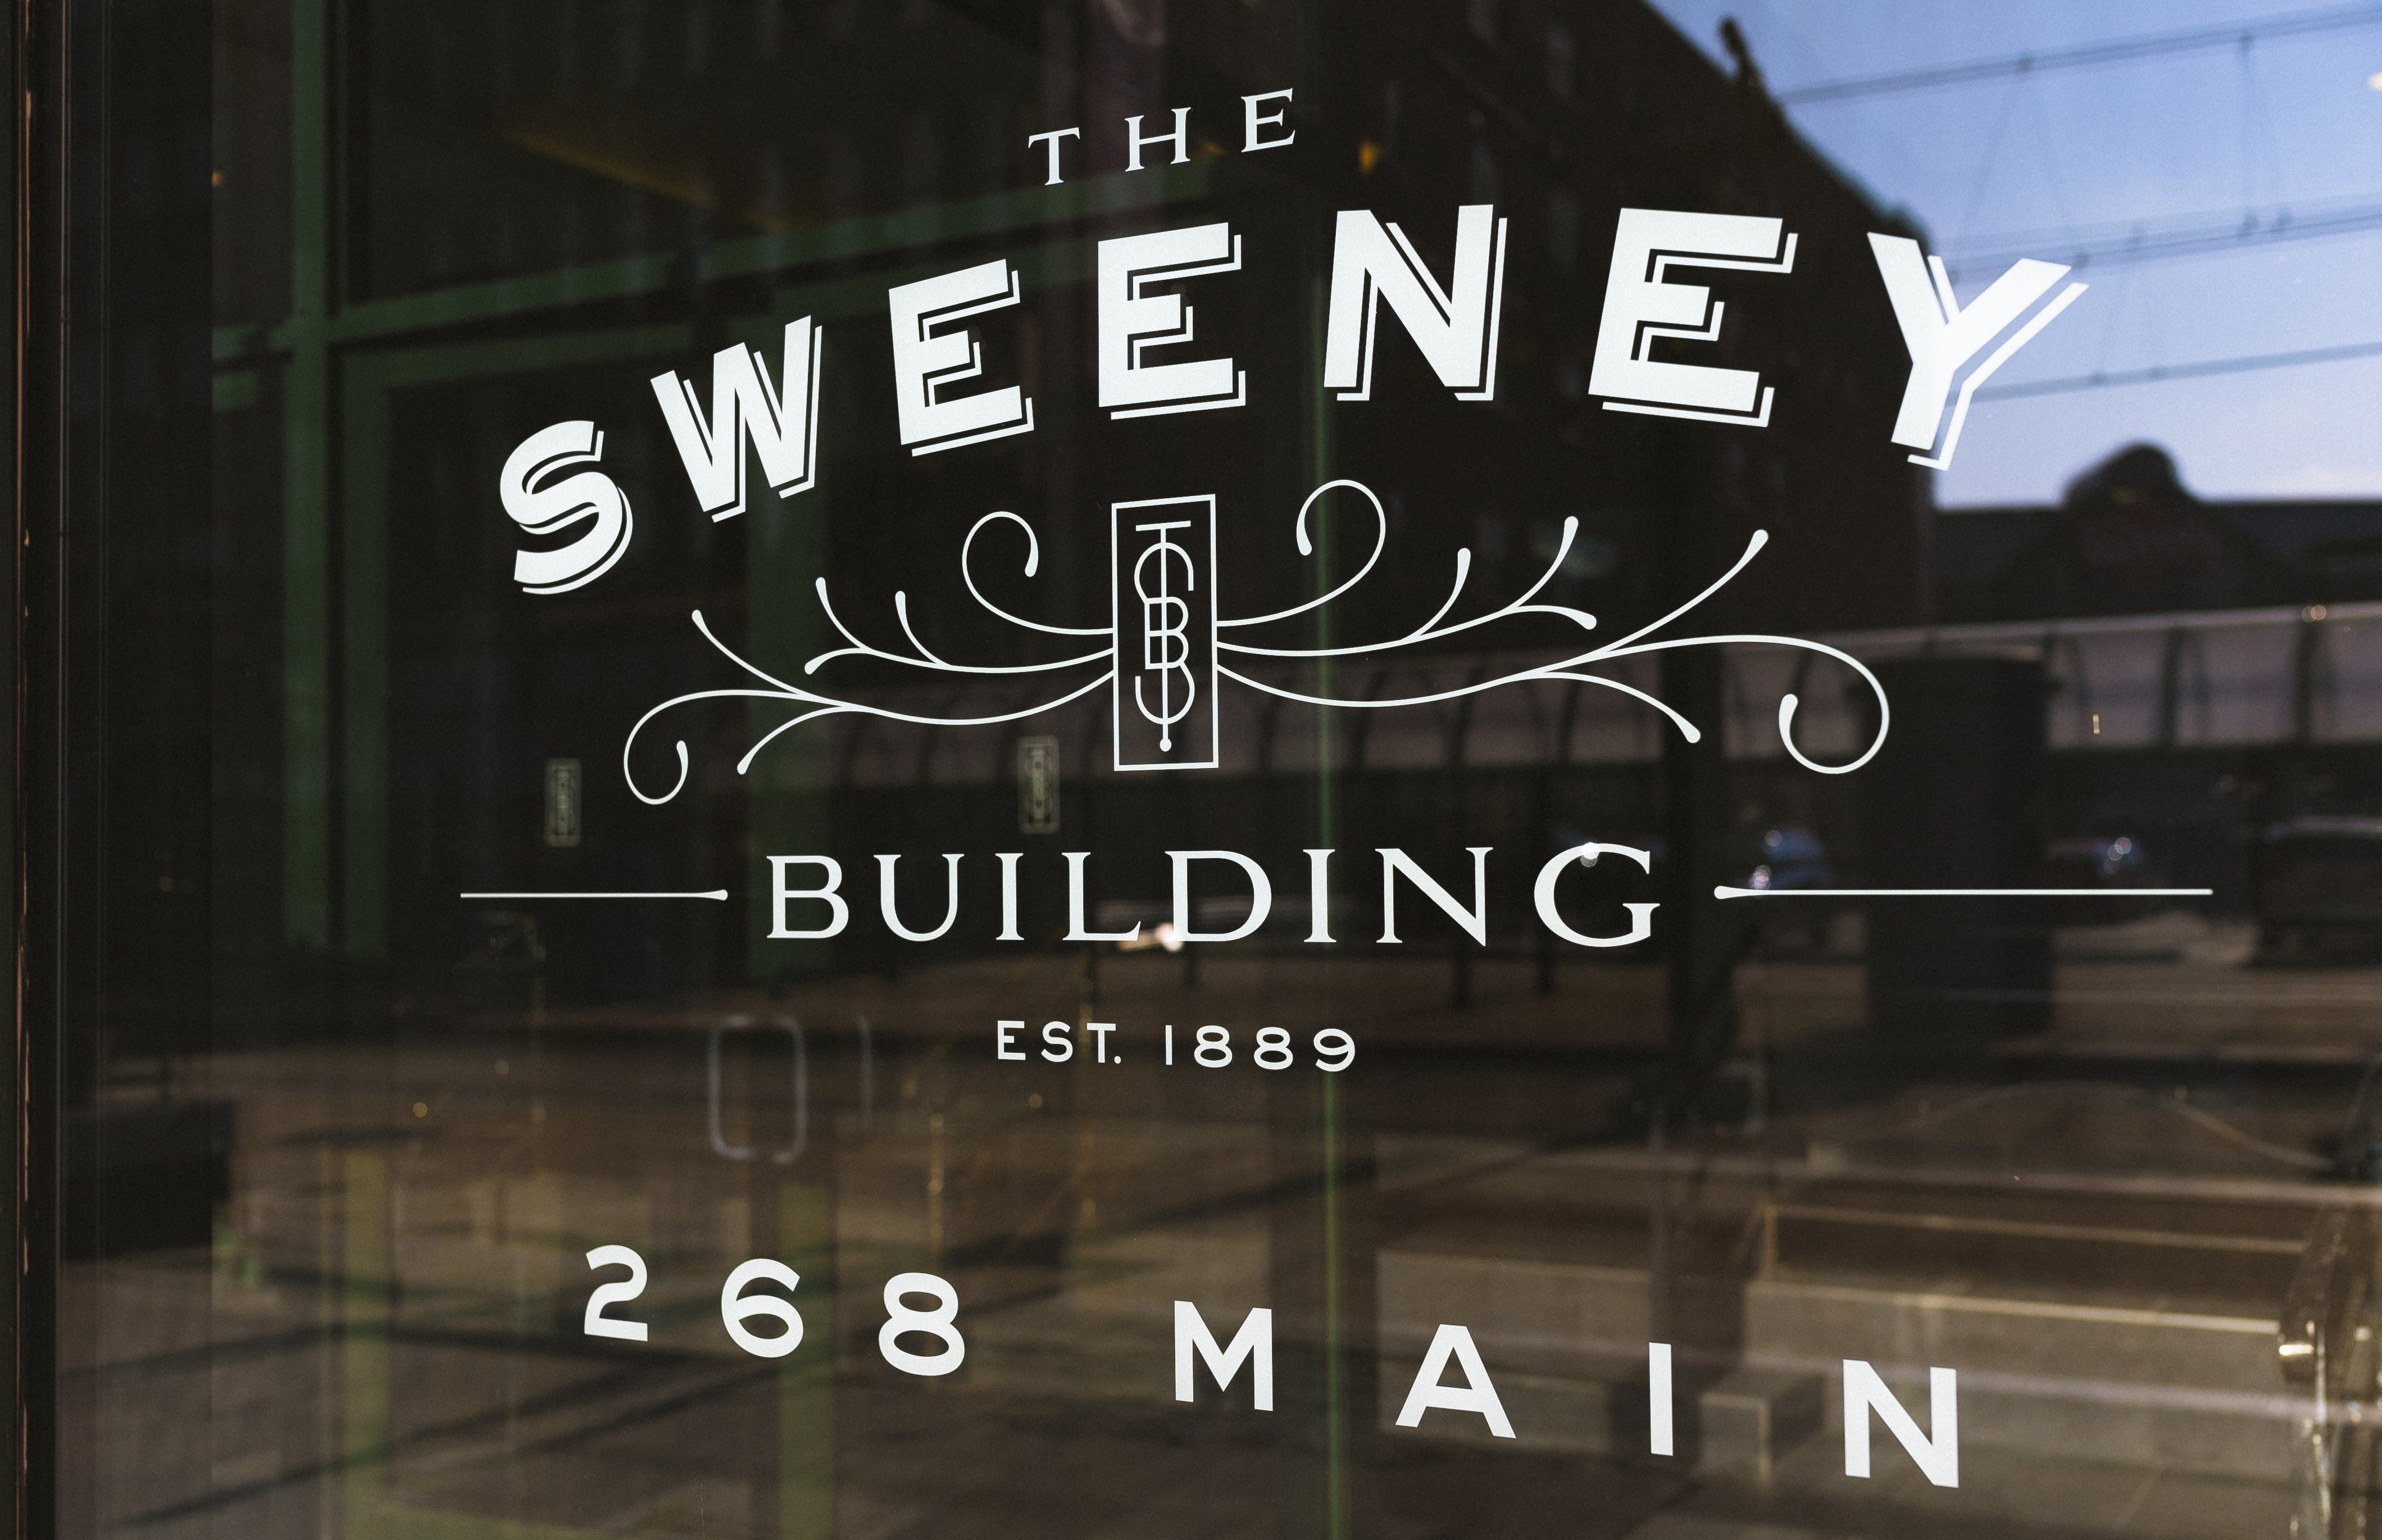 New owners of a six-story building at 268 Main St., Buffalo, which previously was just called 268 Main, renamed it The Sweeney Building, recalling The Sweeney Company Department Store that was one of the buildingþÄôs first occupants in the early 1900s. Three partners of Crowley Webb, a Buffalo-based advertising agency that leases space there, purchased the structure in April 2016. (Courtesy of Nolan Whipple)